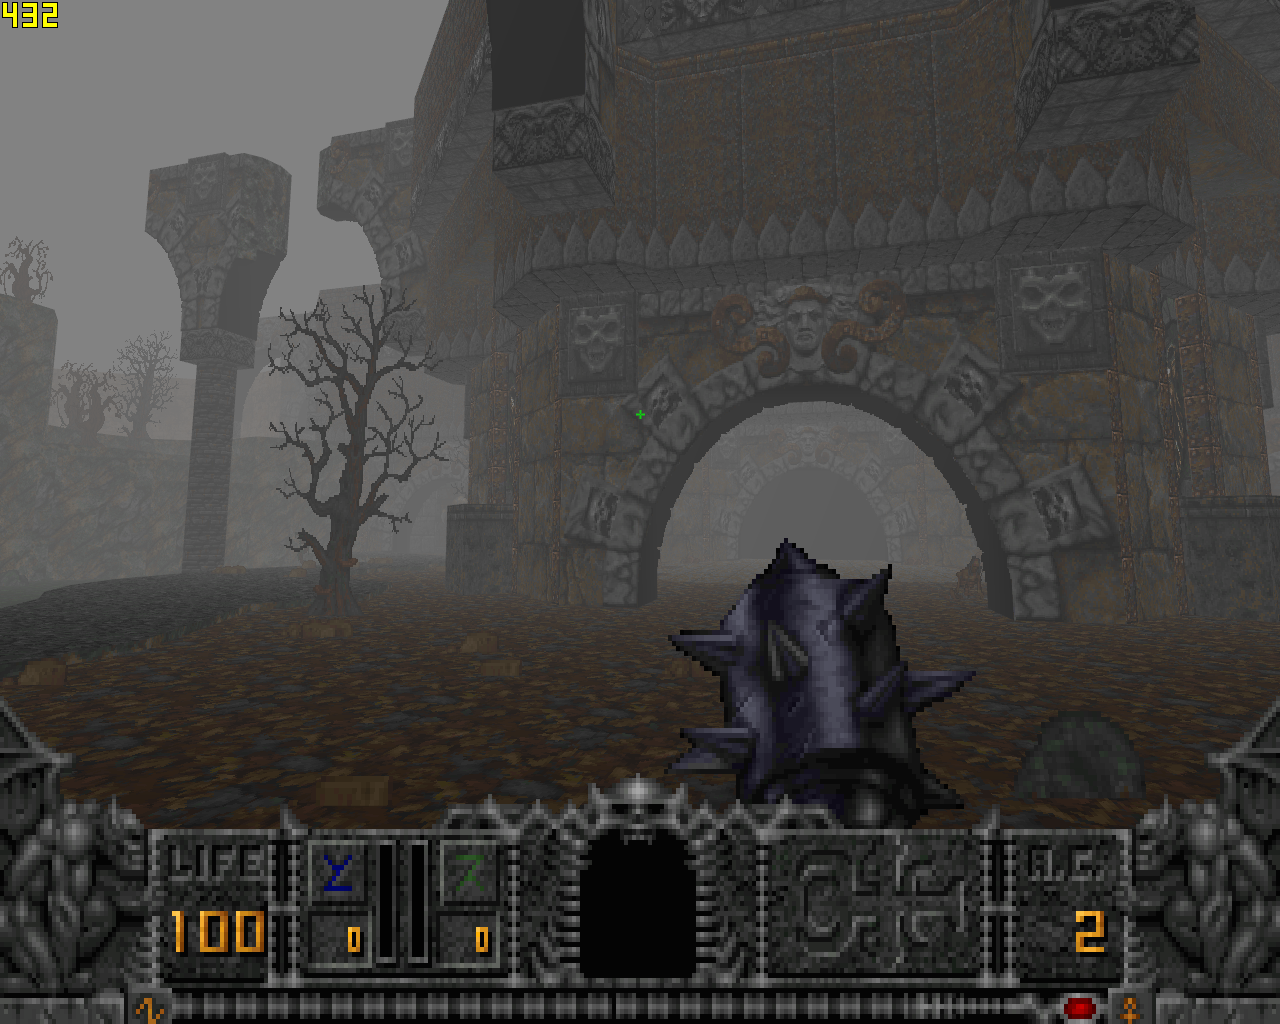 Screenshot_Hexen_20100428_185938.png